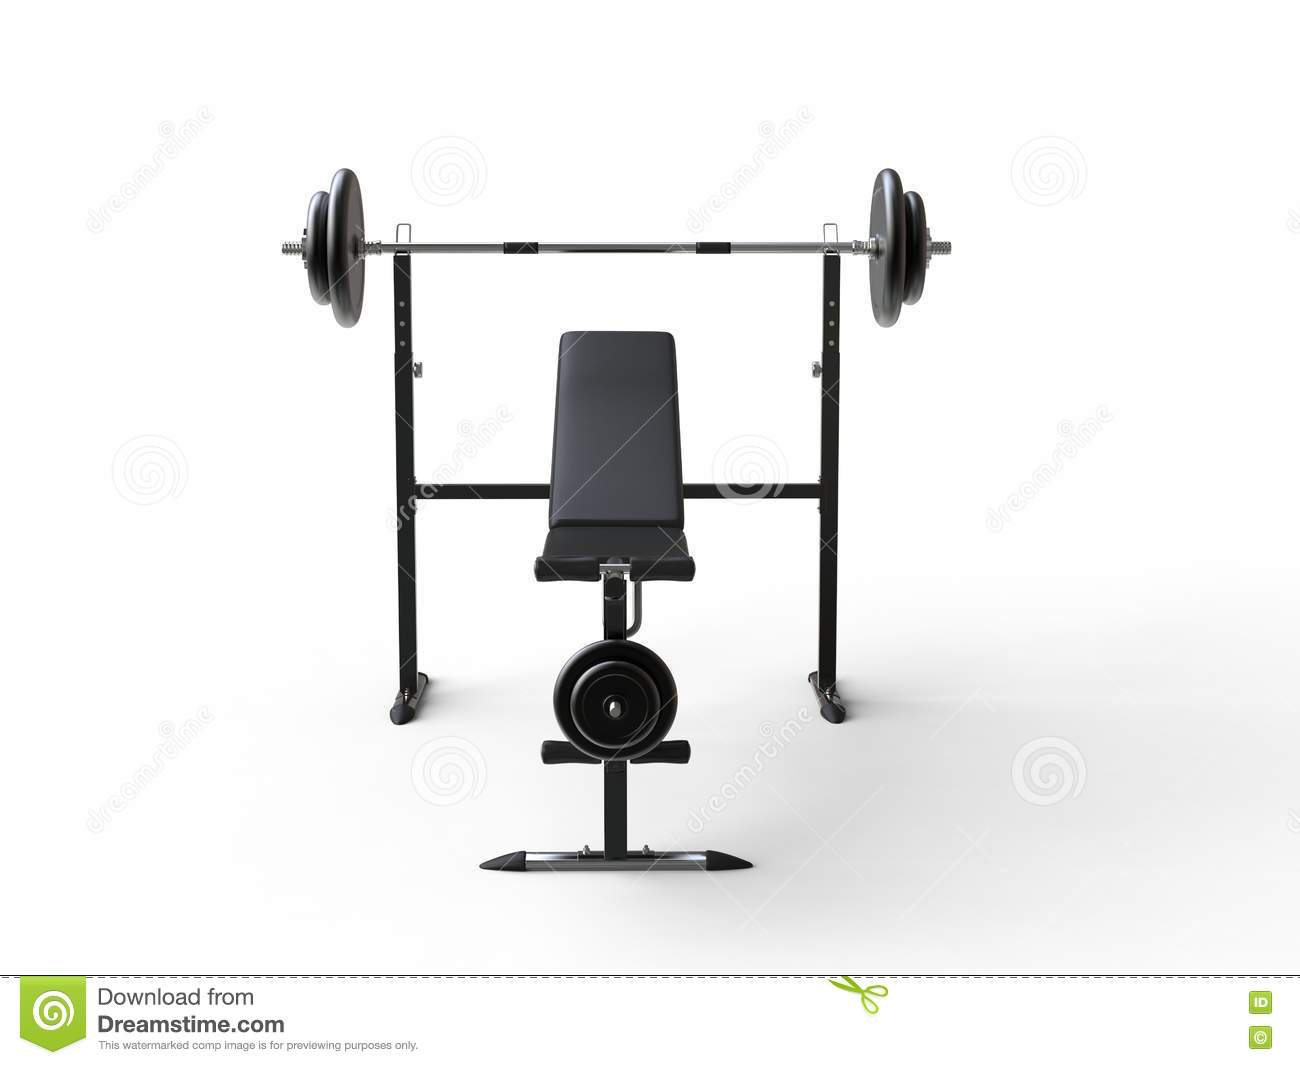 Incline gym bench with barbell weight and additional weight plates - front view